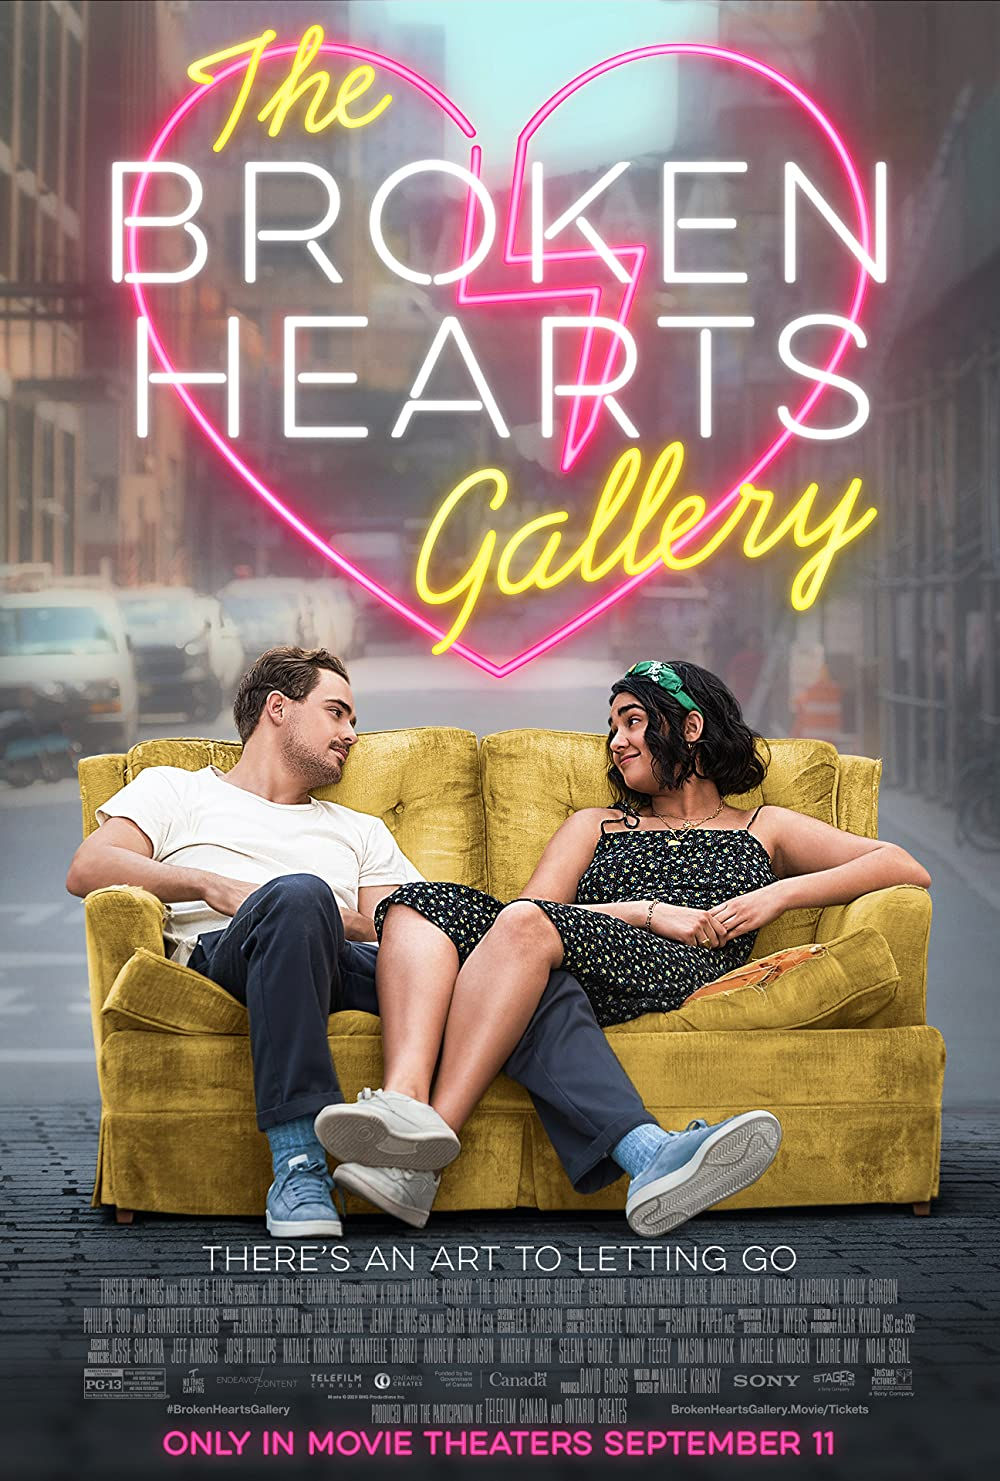 The Broken Hearts Gallery 2020 Dual Audio 1080p BluRay [Hindi ORG + English] ESubs